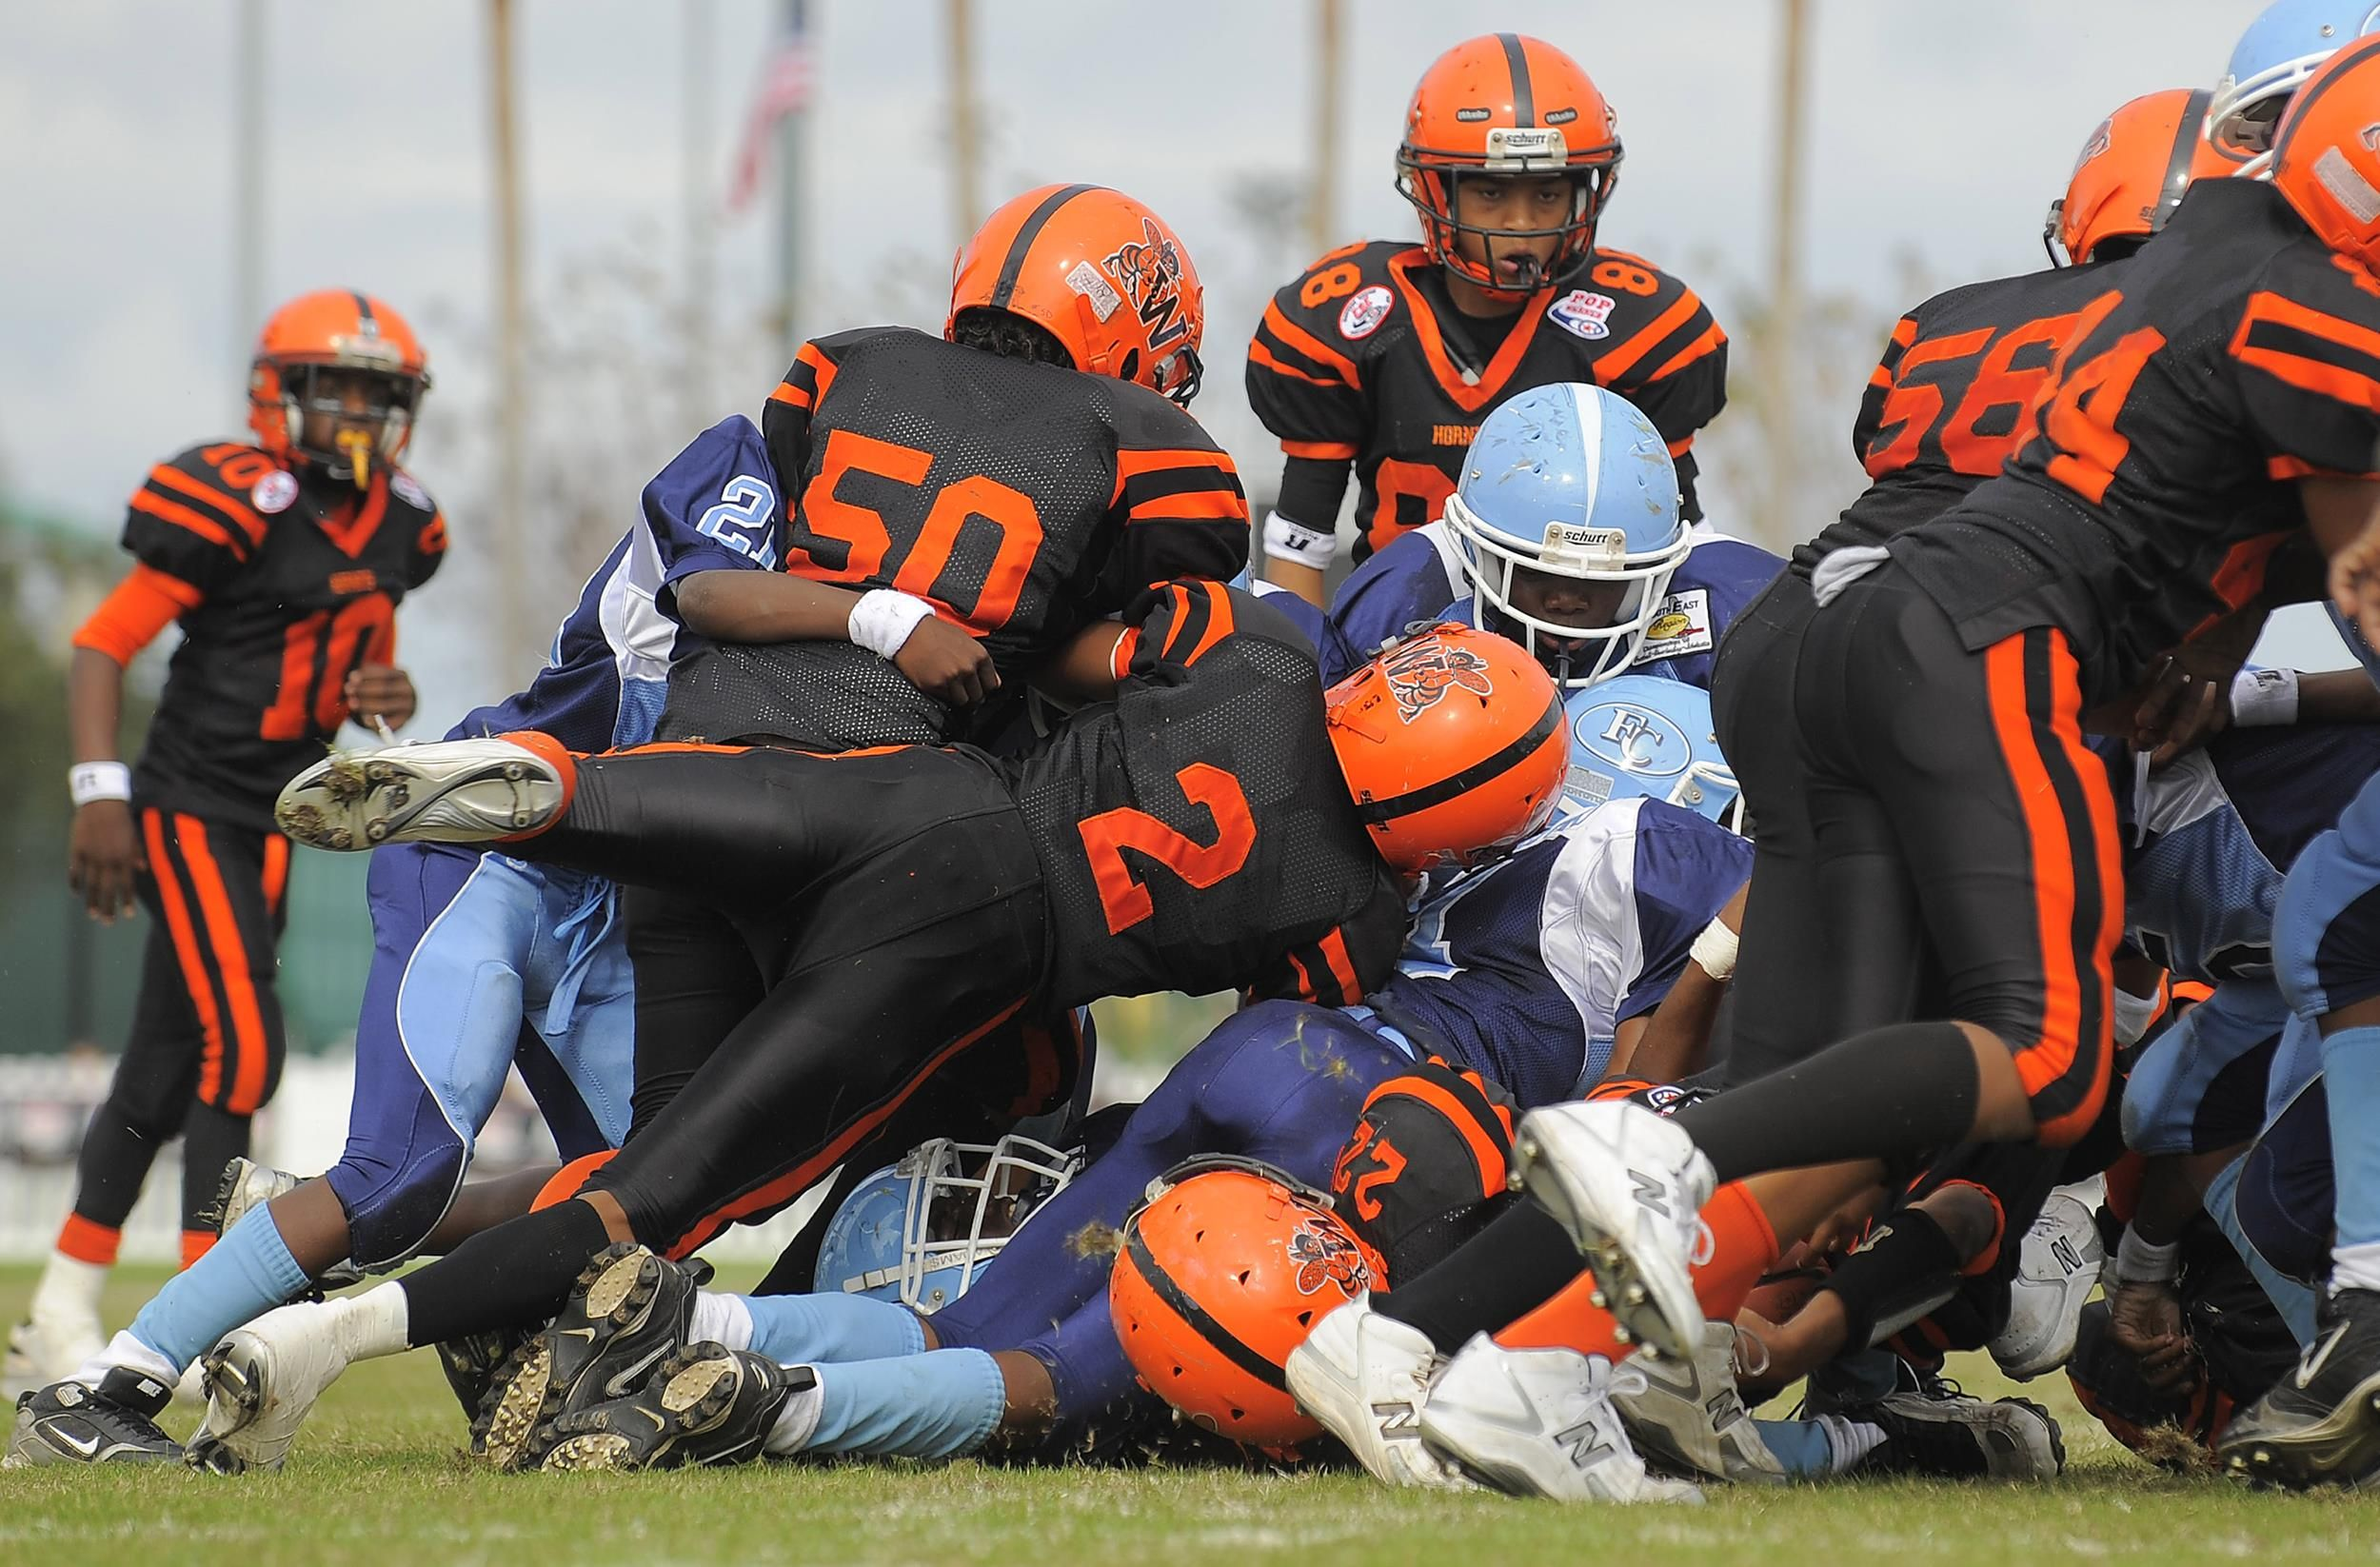 Is football nearing a cultural crossroads as concussions